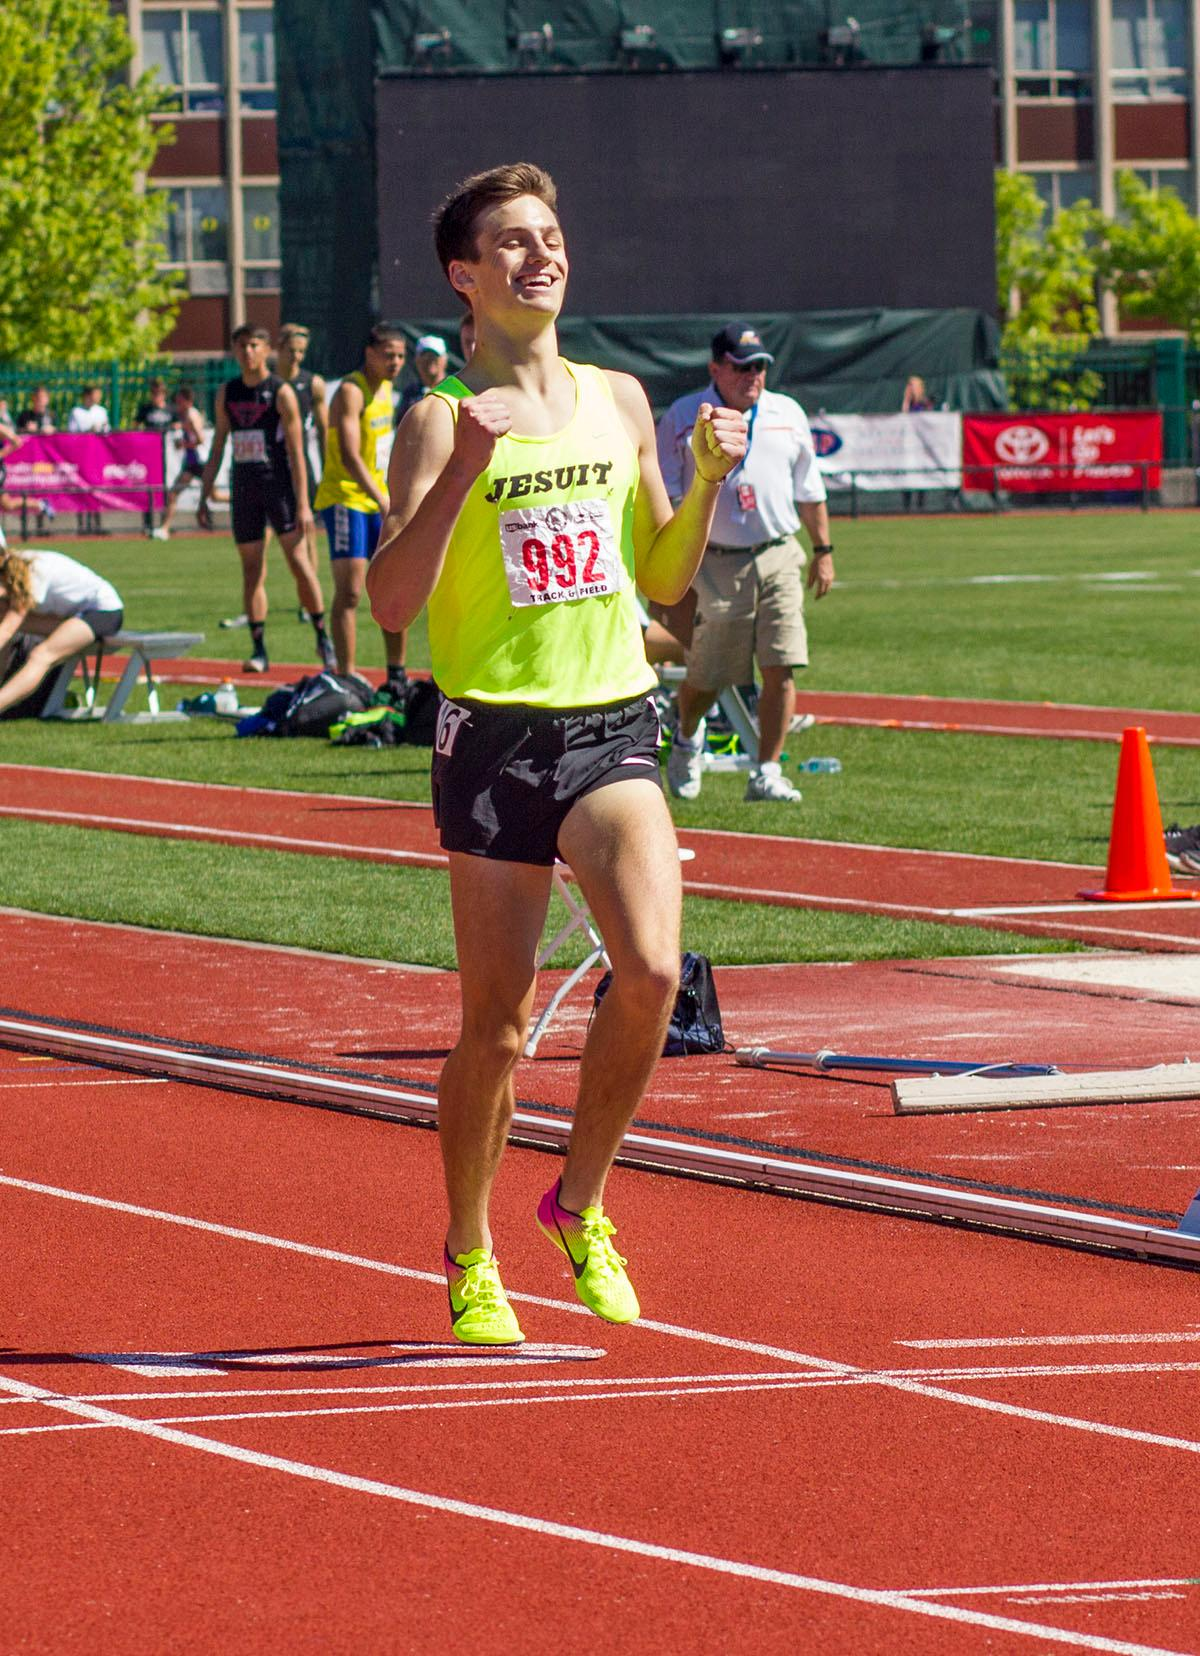 Joshua Schumacher of Jesuit High School wins the 6A Boys 3000 Meter Run with a time of 8:29.91 on Friday at the 2017 OSAA State Track and Field Championships Hayward Field. Photo by: Stephanie Cusano, Oregon News Lab